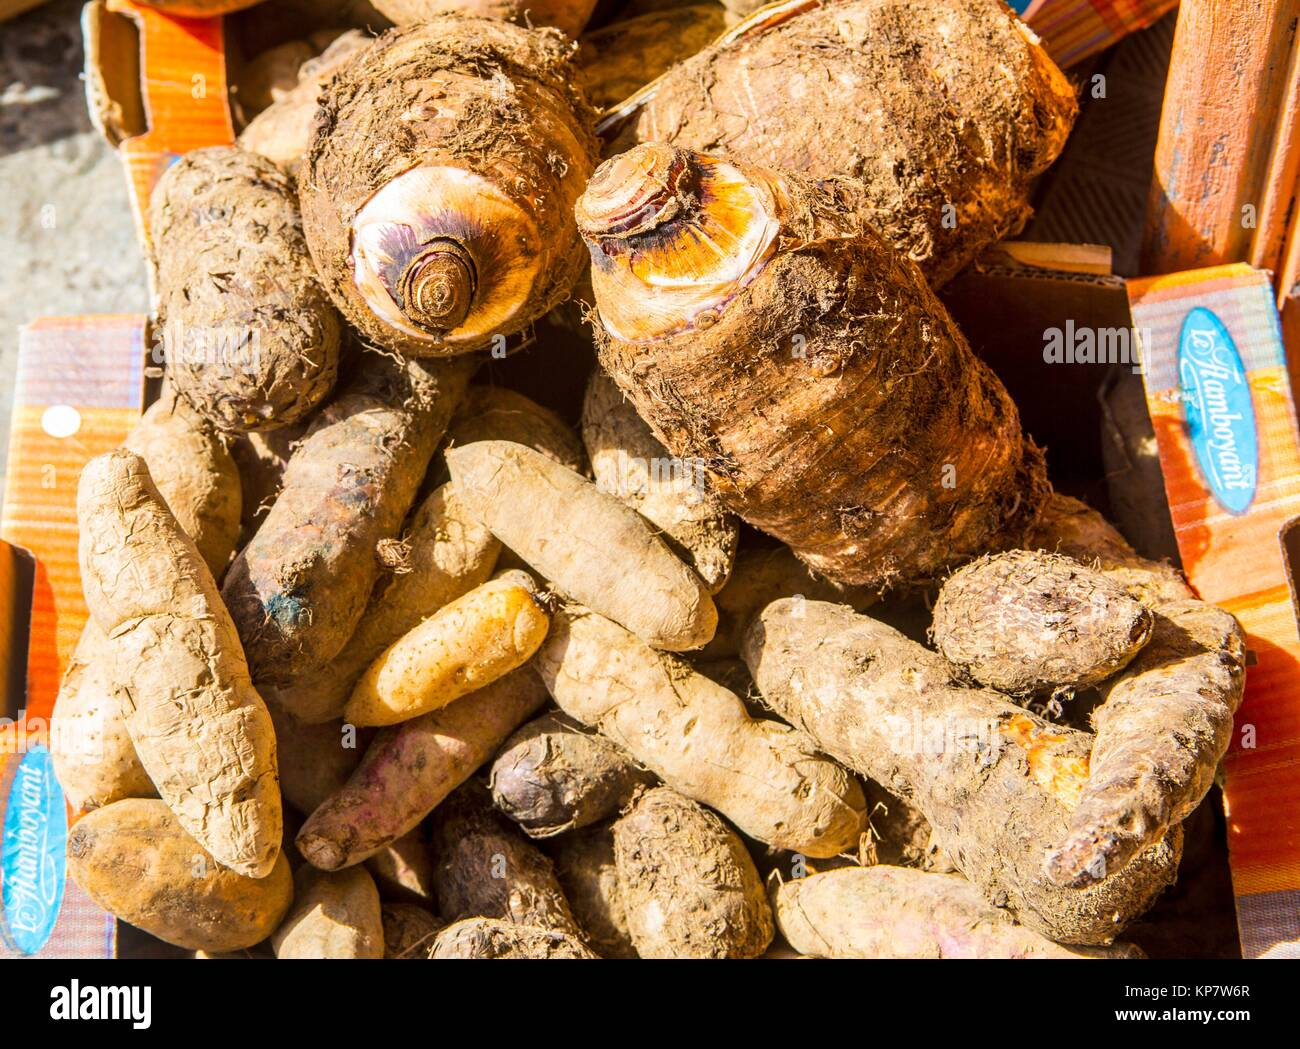 Local potato for sale in bulk in a local market in the tropical island of Martinique. - Stock Image